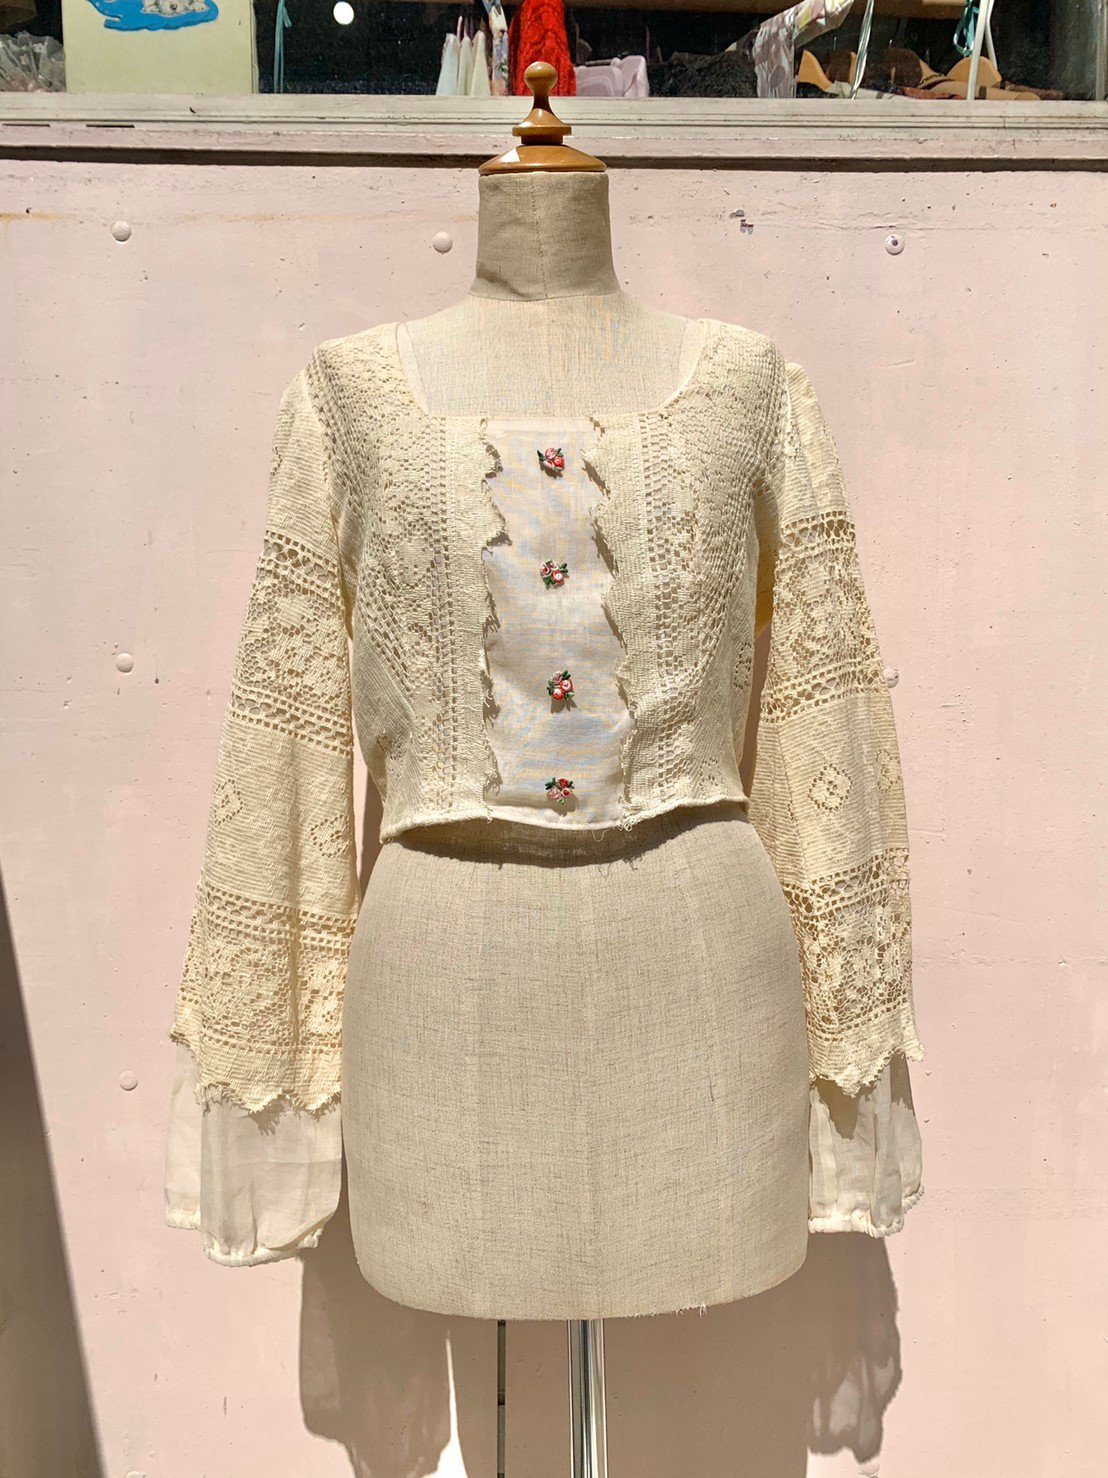 5.flower lace sleeve blouse